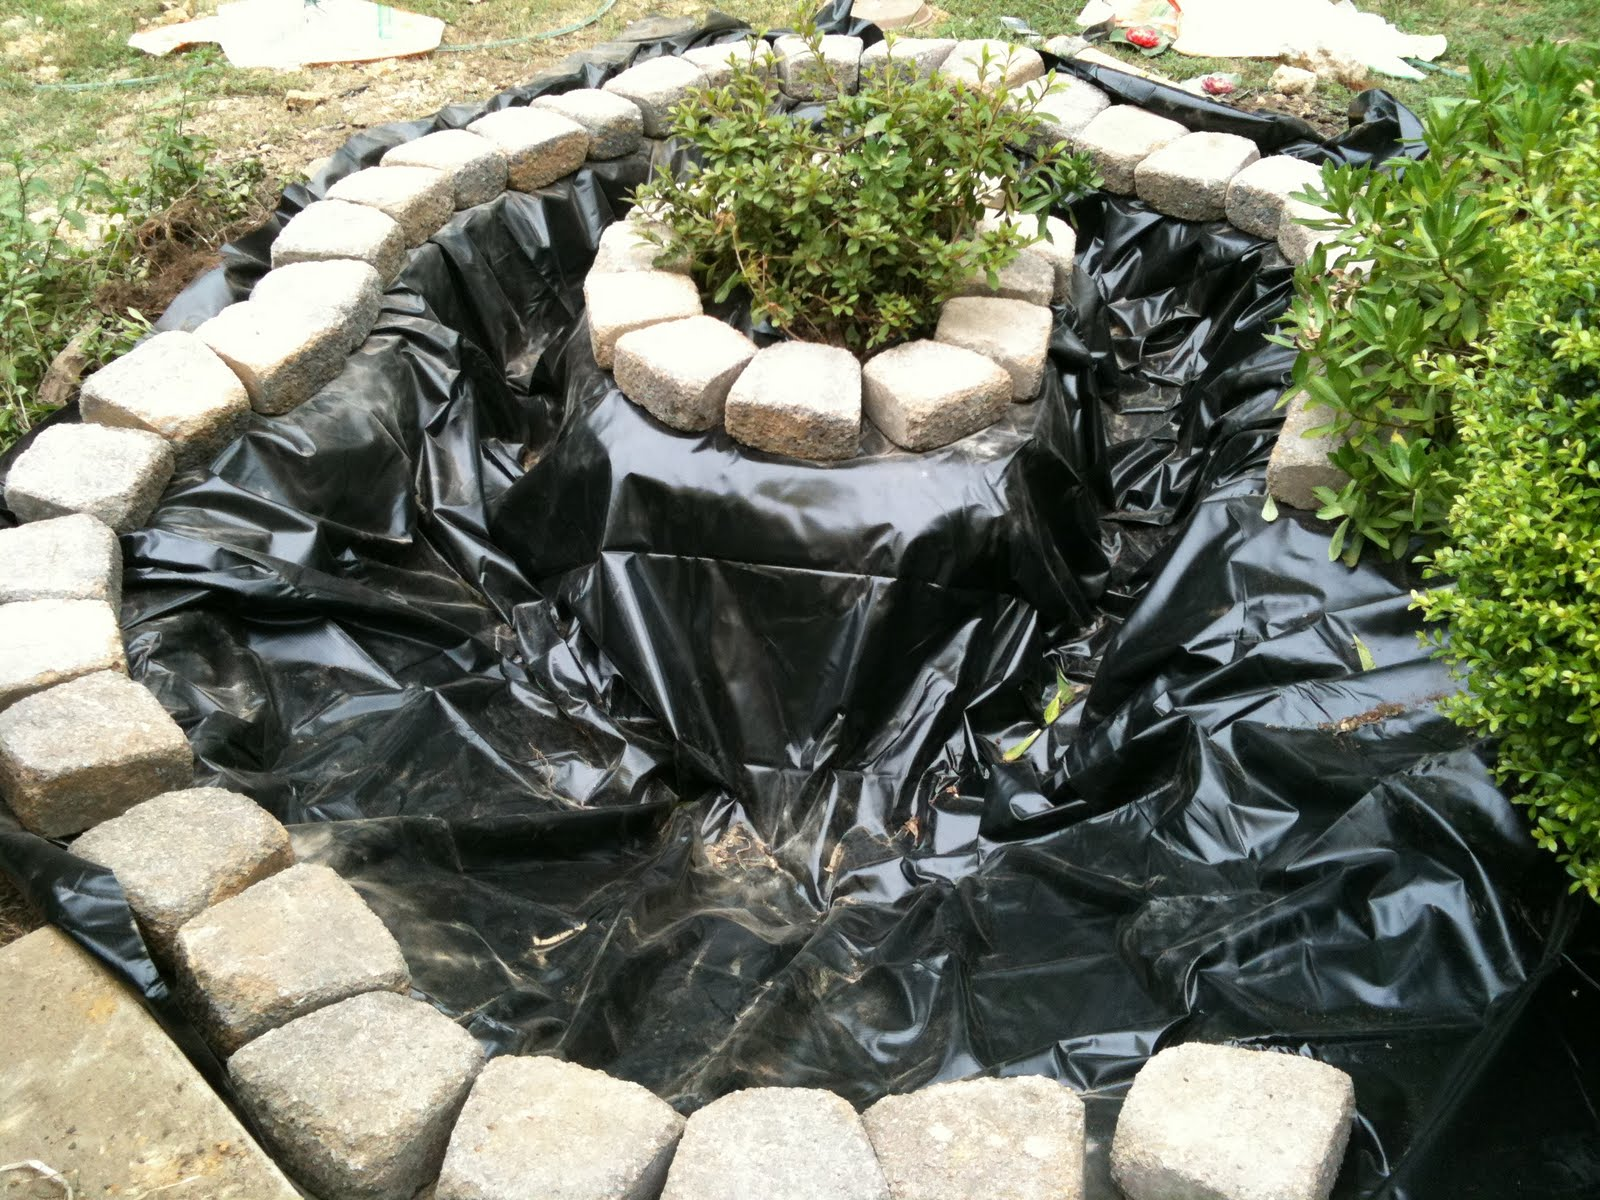 My Diy Addiction How To Make A Garden Pond: large preformed ponds